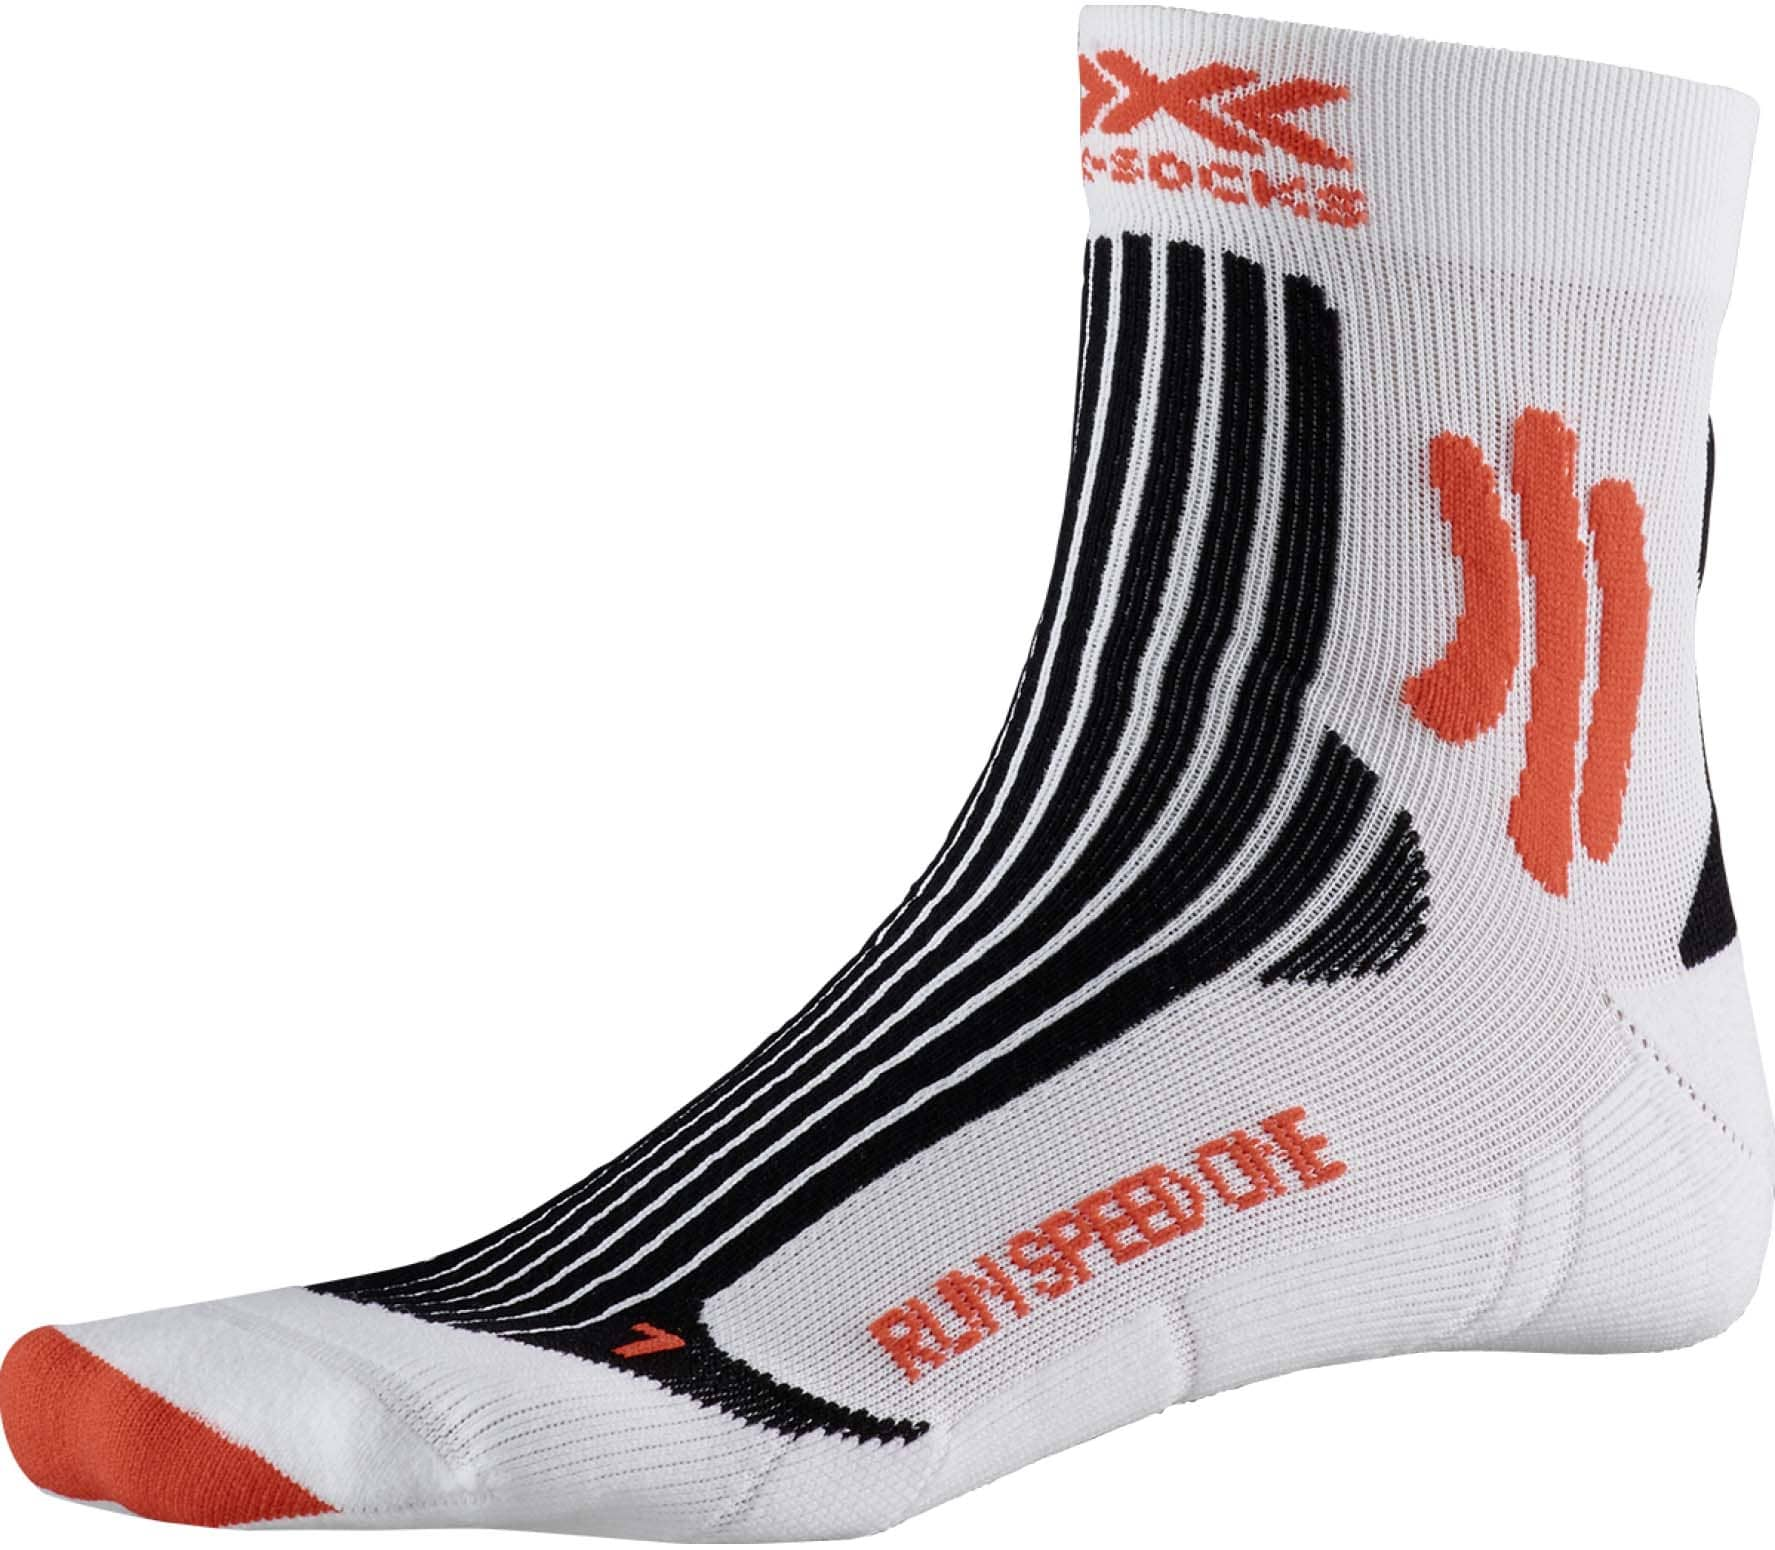 X-BIONIC Speed One Hommes Chaussette running blanc